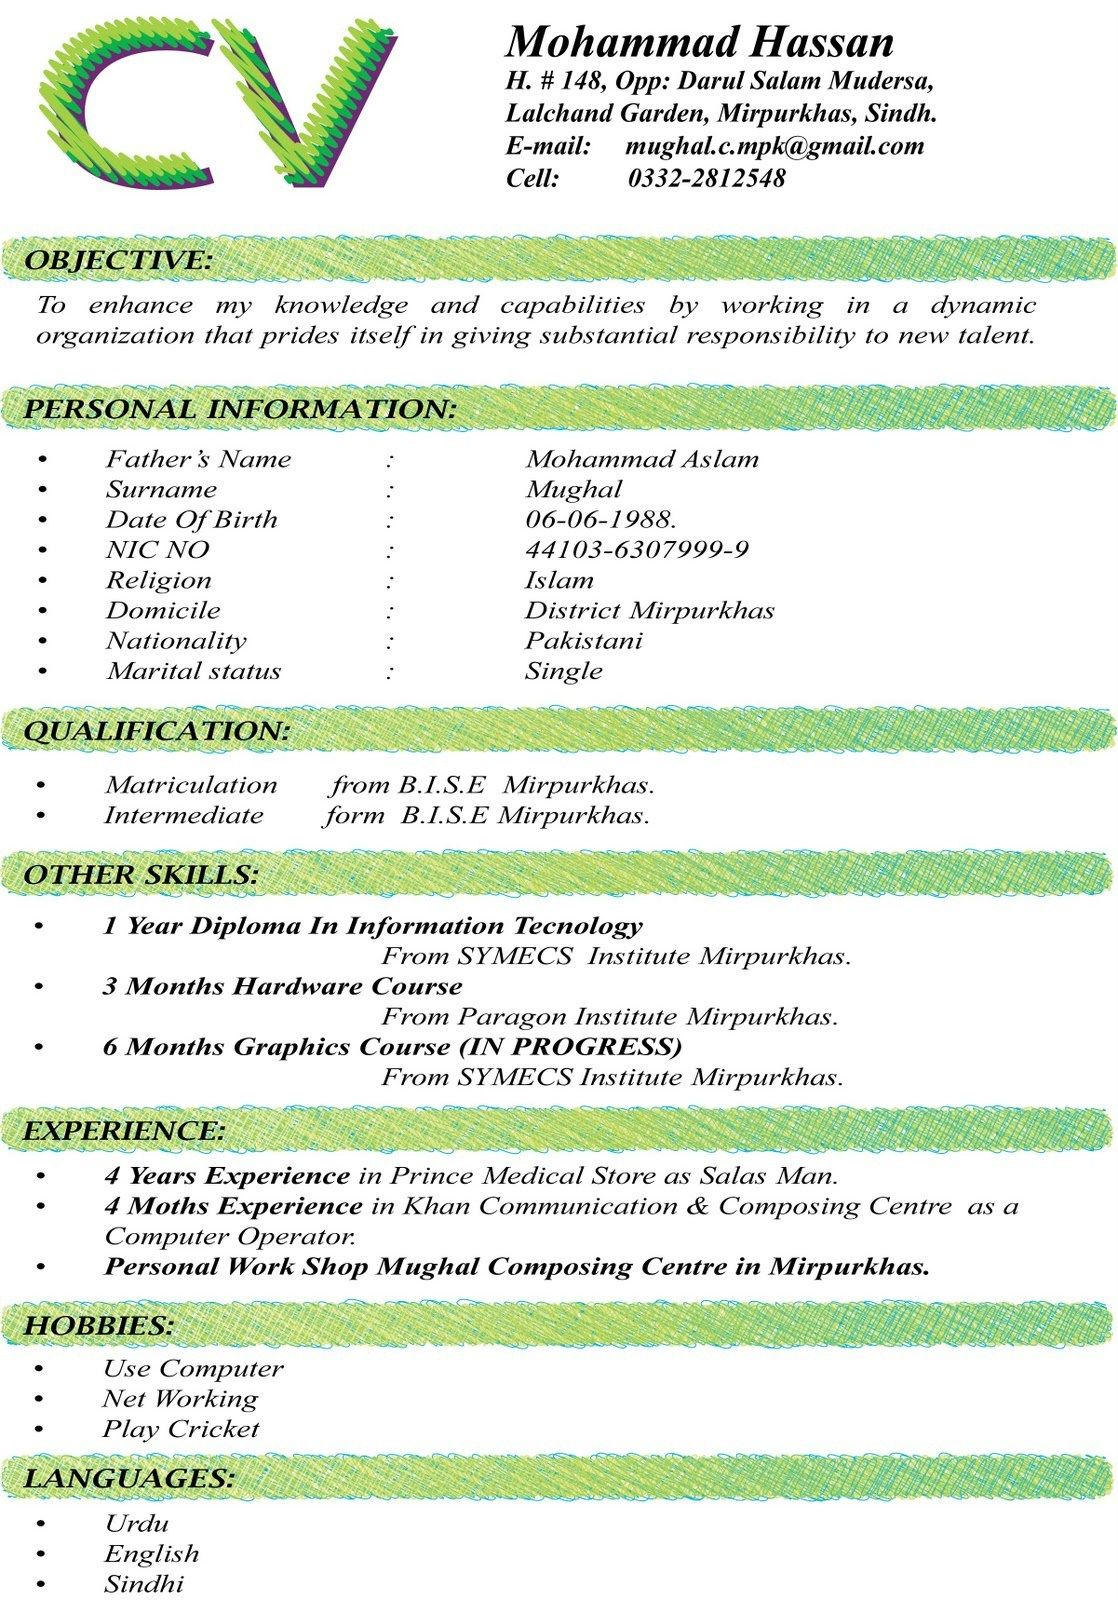 cv format to download free cv templates download cv format